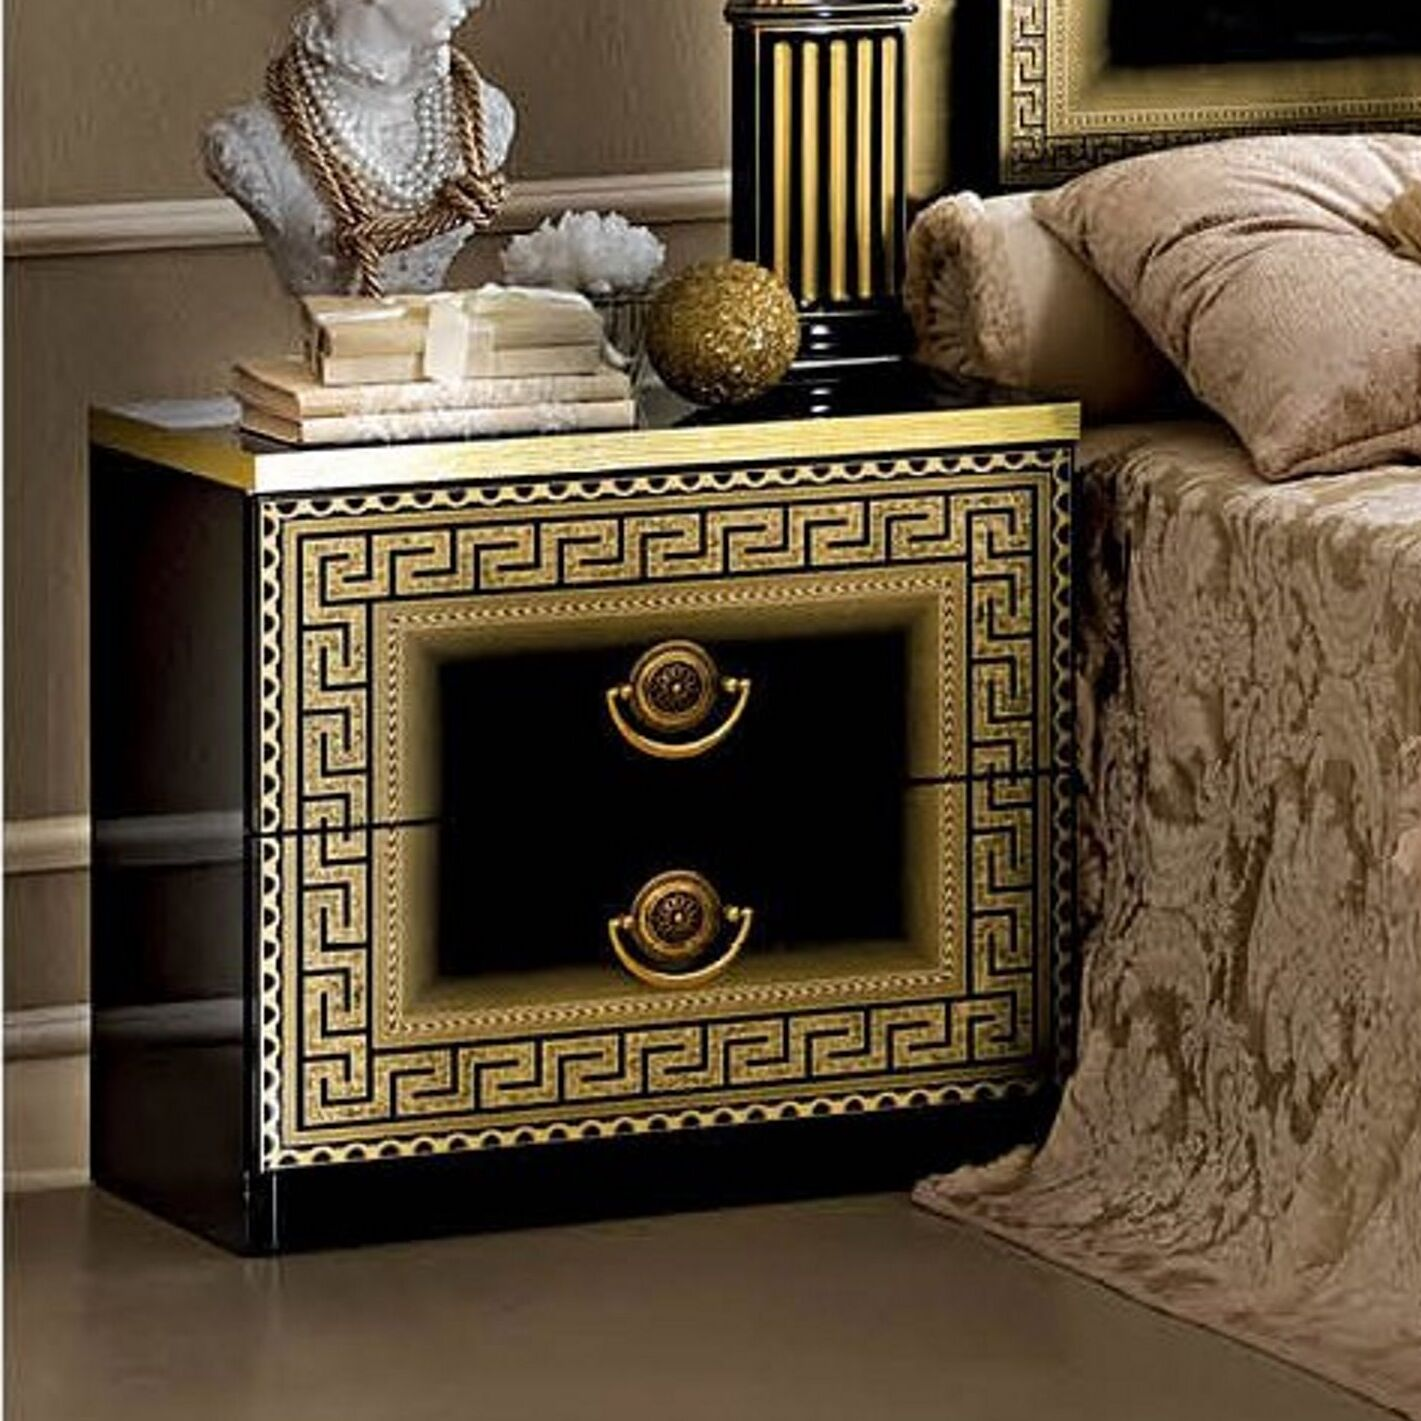 Albury 2 Drawer Nightstand Color: Black/Gold